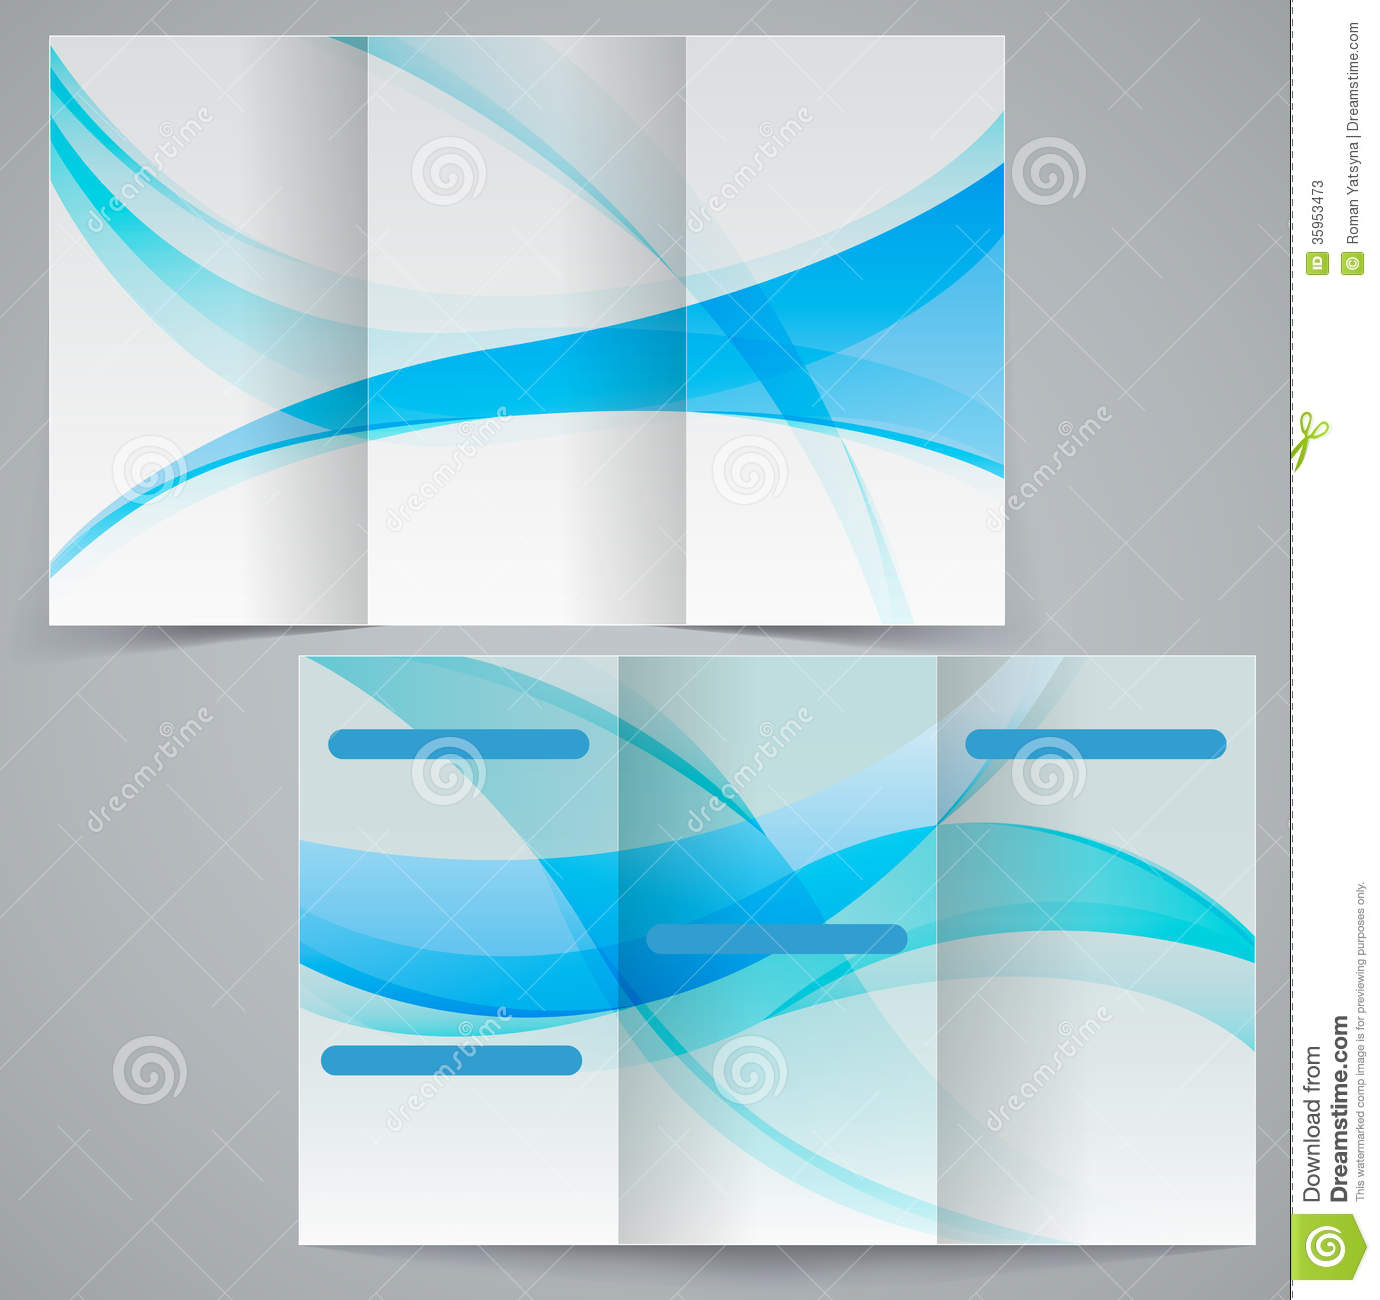 Tri fold business brochure template vector blue d stock for Company brochure template free